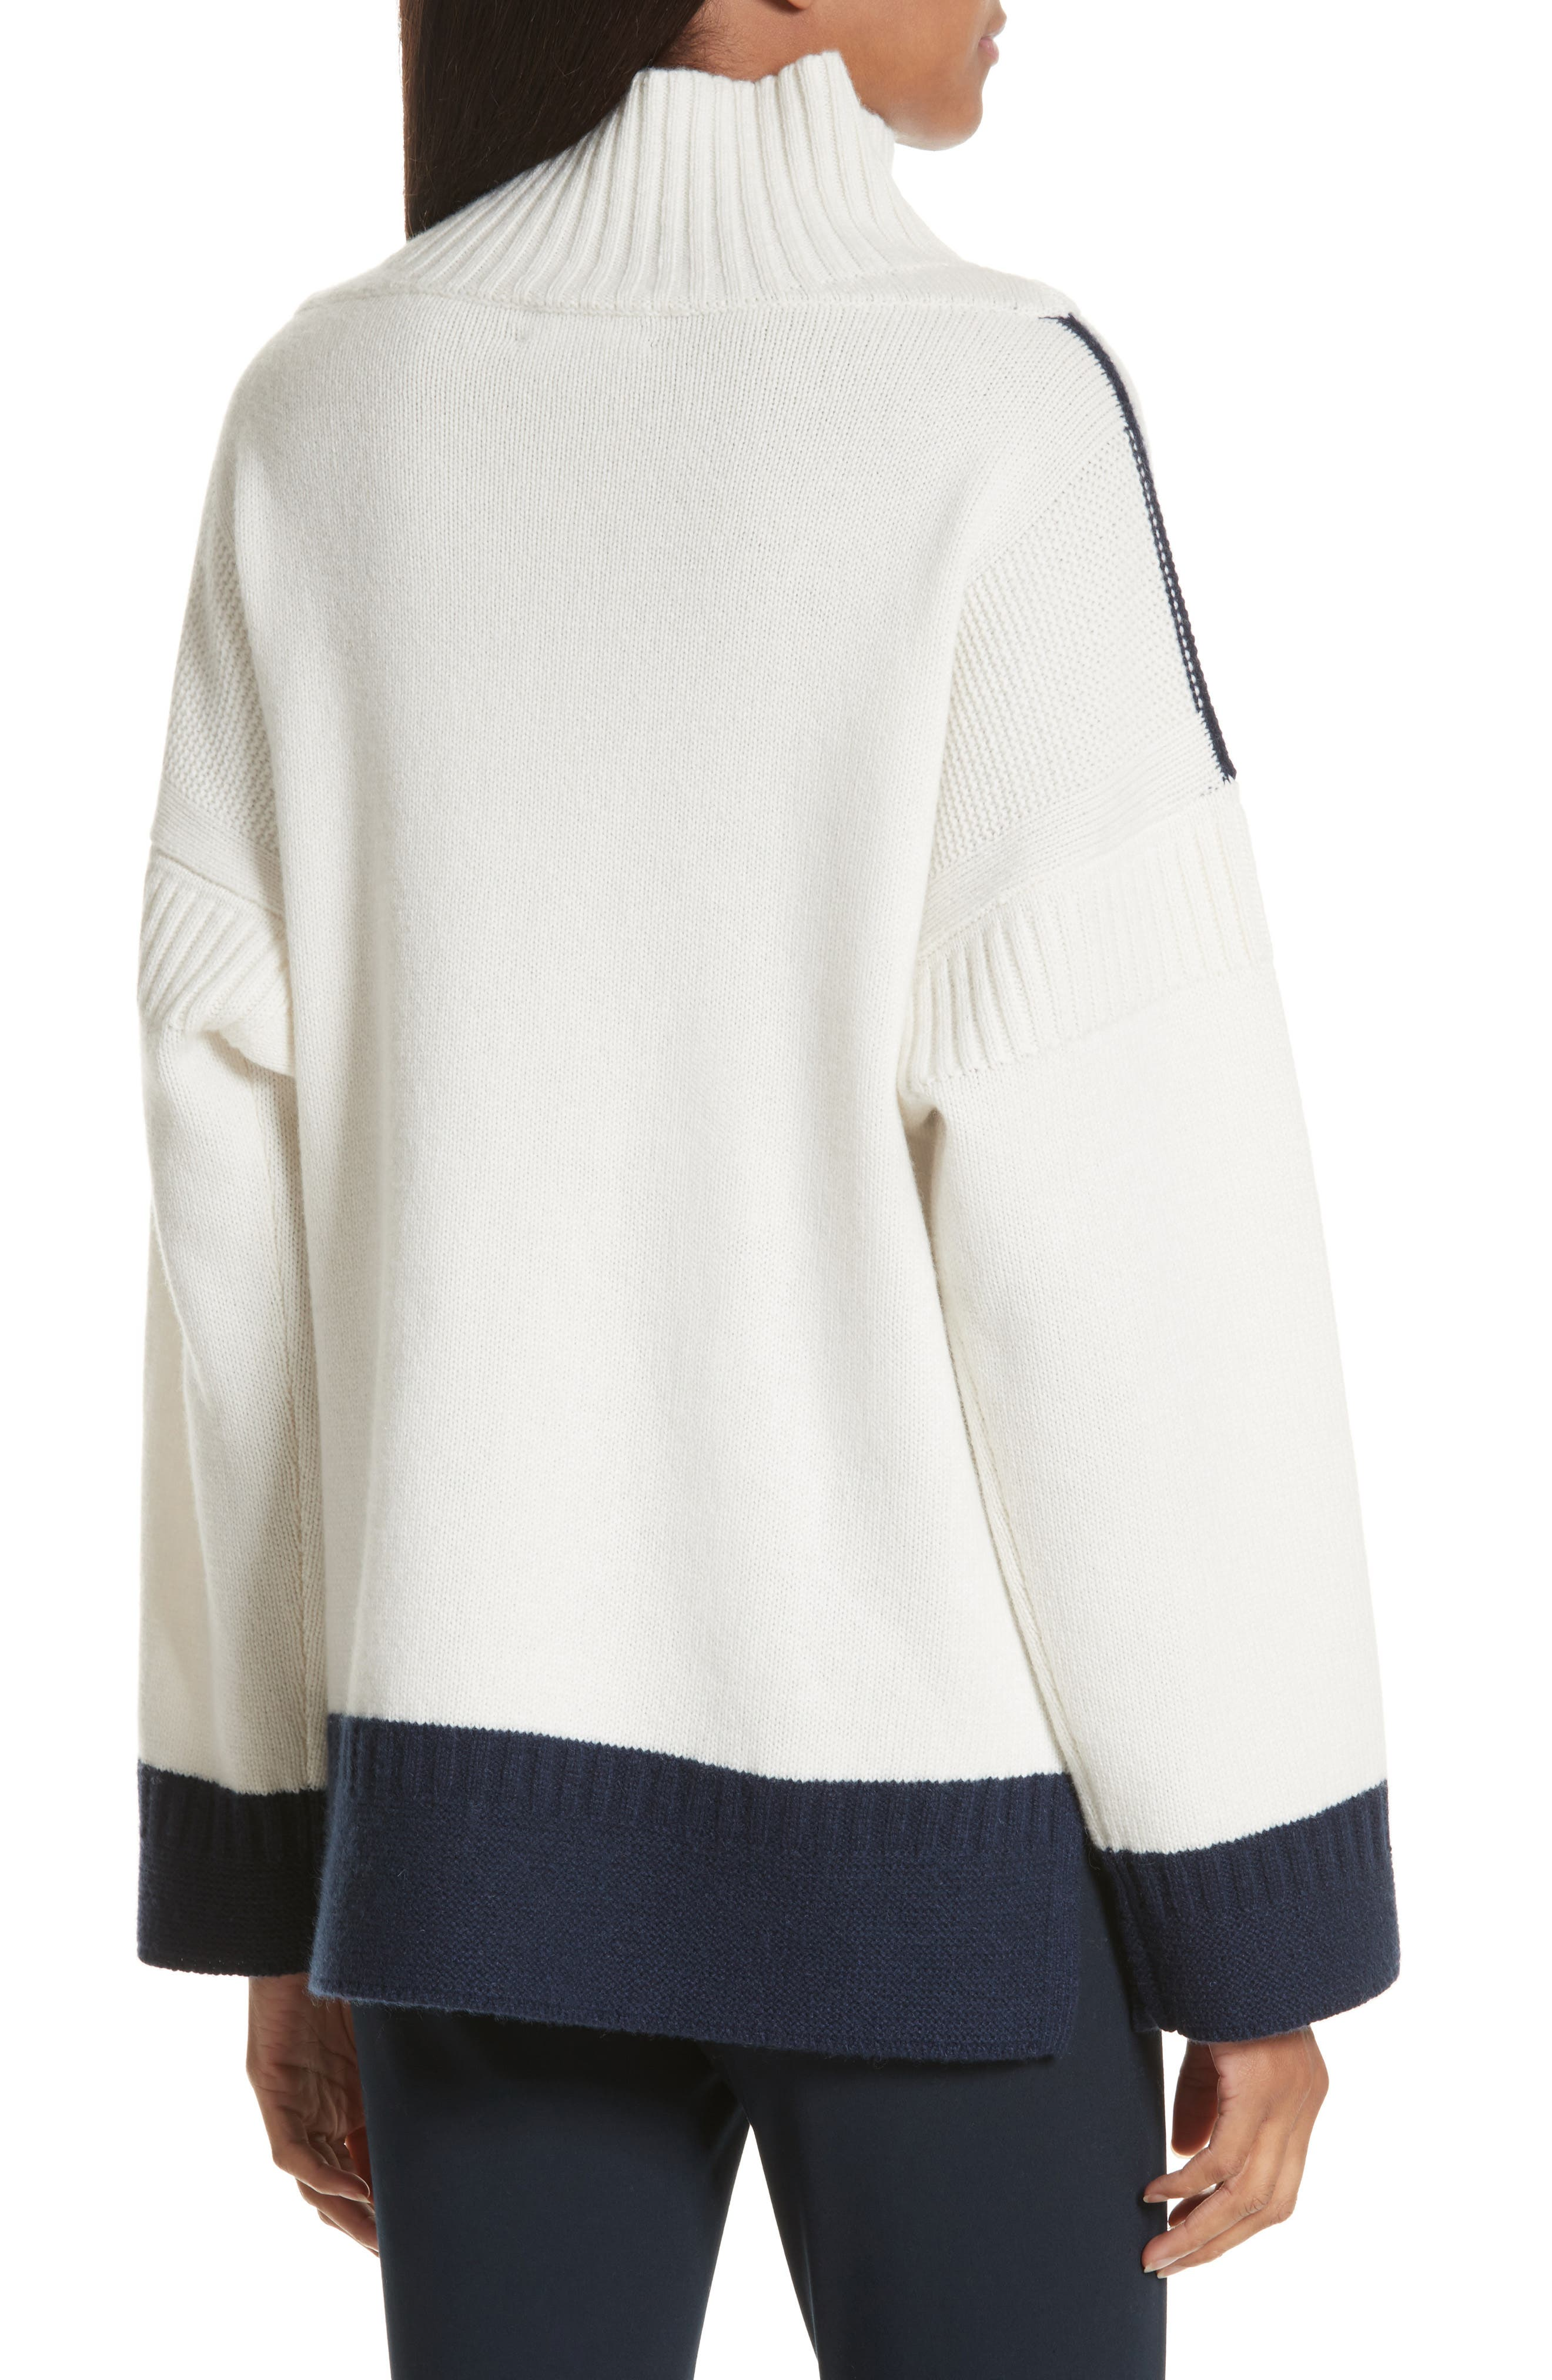 Aubree Funnel Neck Cashmere Sweater,                             Alternate thumbnail 2, color,                             Ivory/Navy